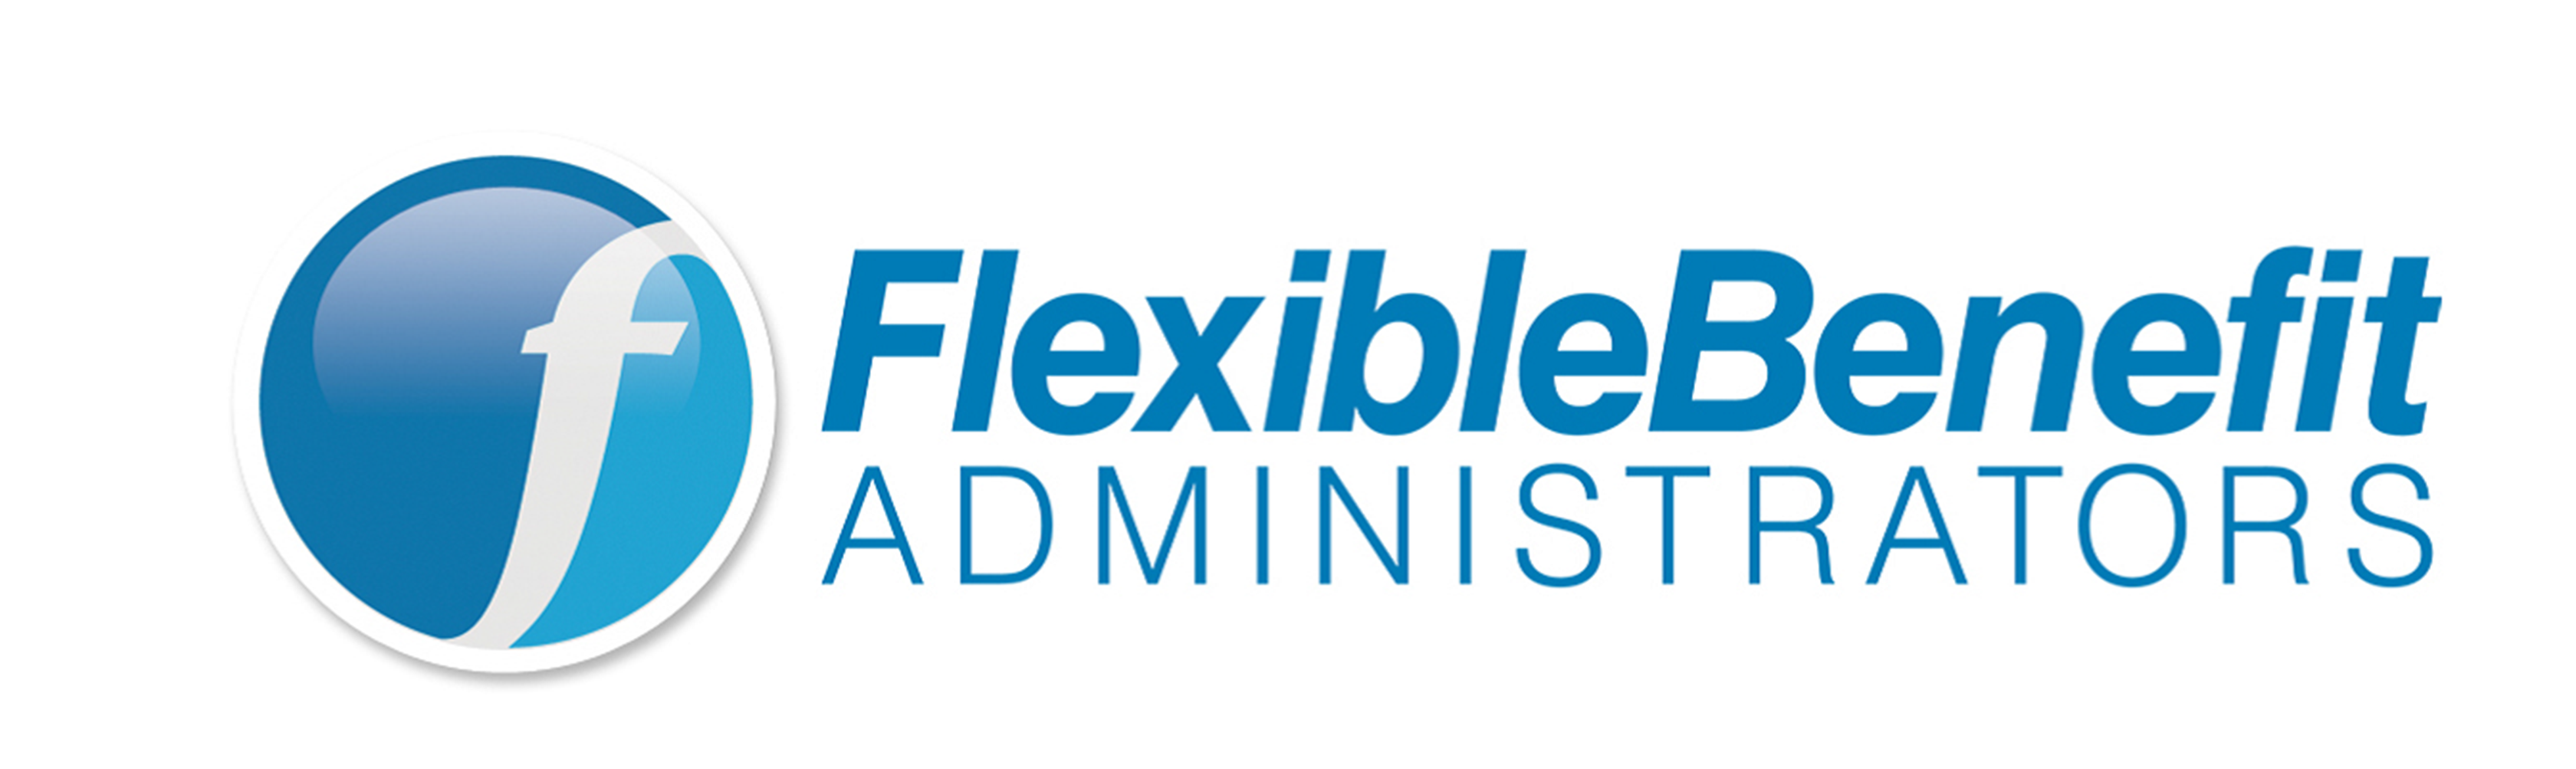 Flexible Benefit Administrators, Inc.